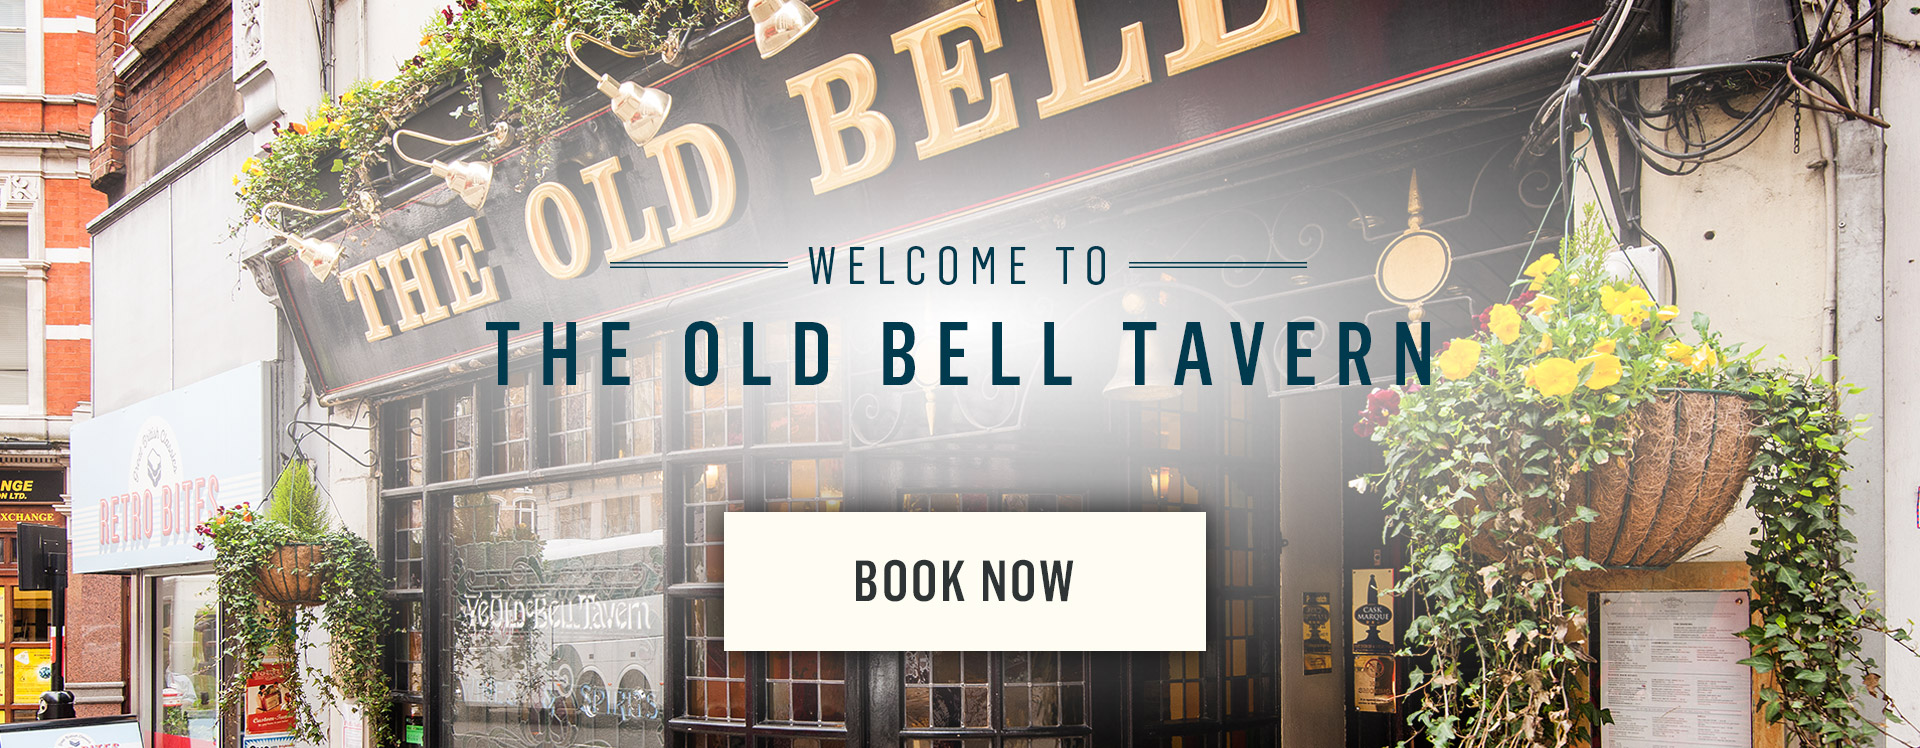 Welcome to The Old Bell Tavern - Book Now